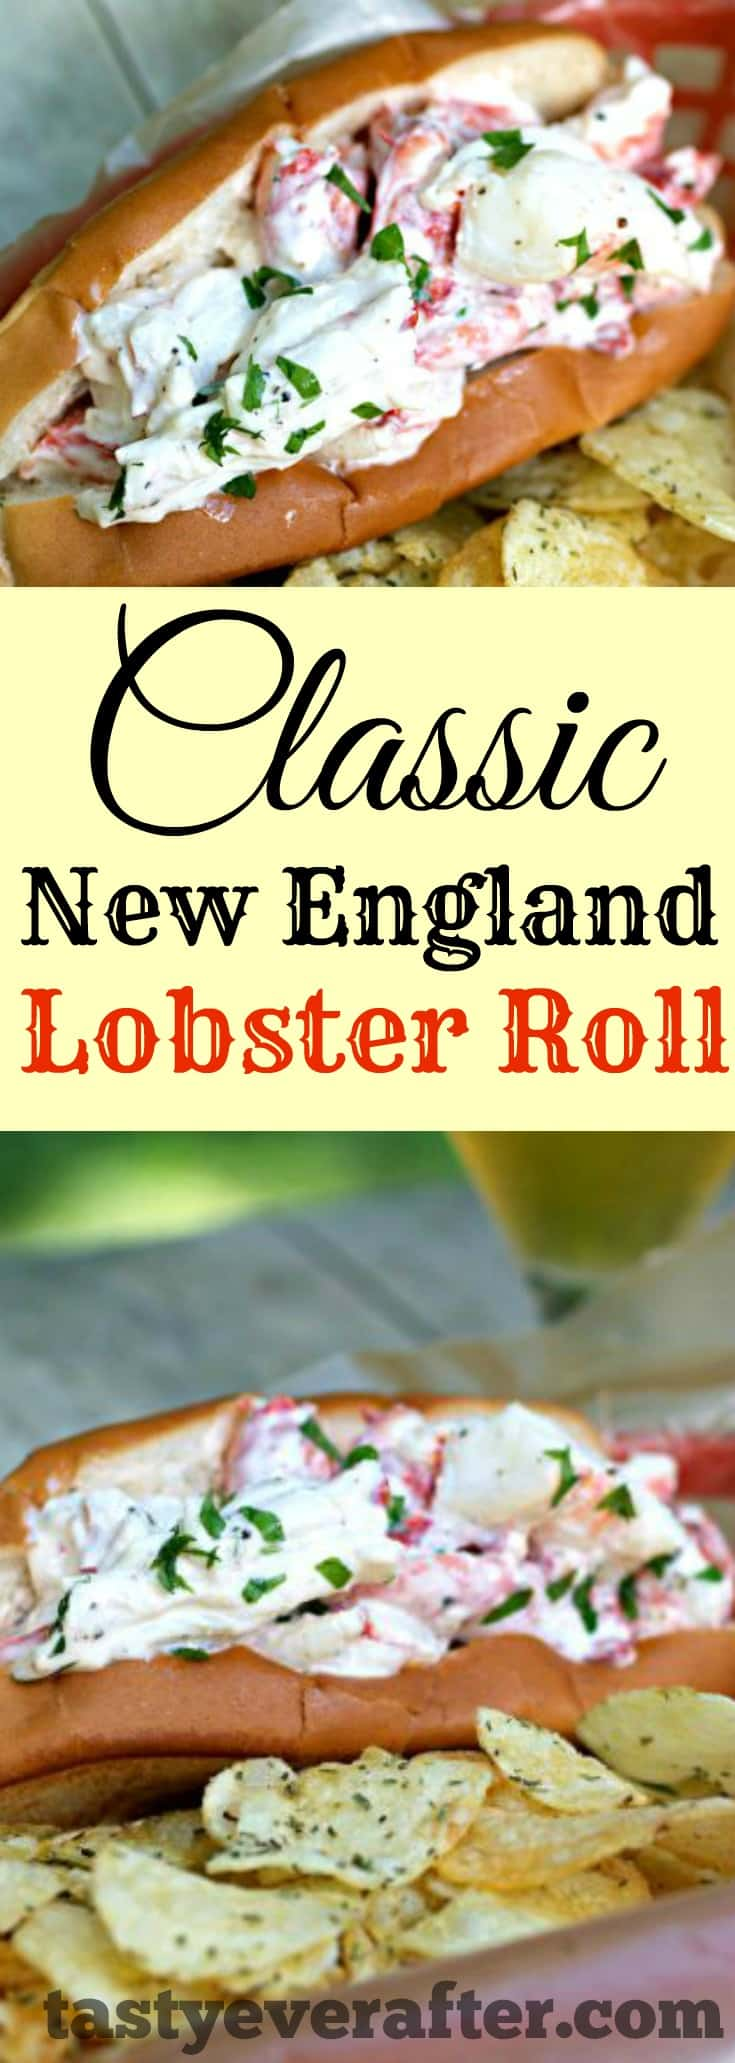 The taste of summer in a classic New England lobster roll